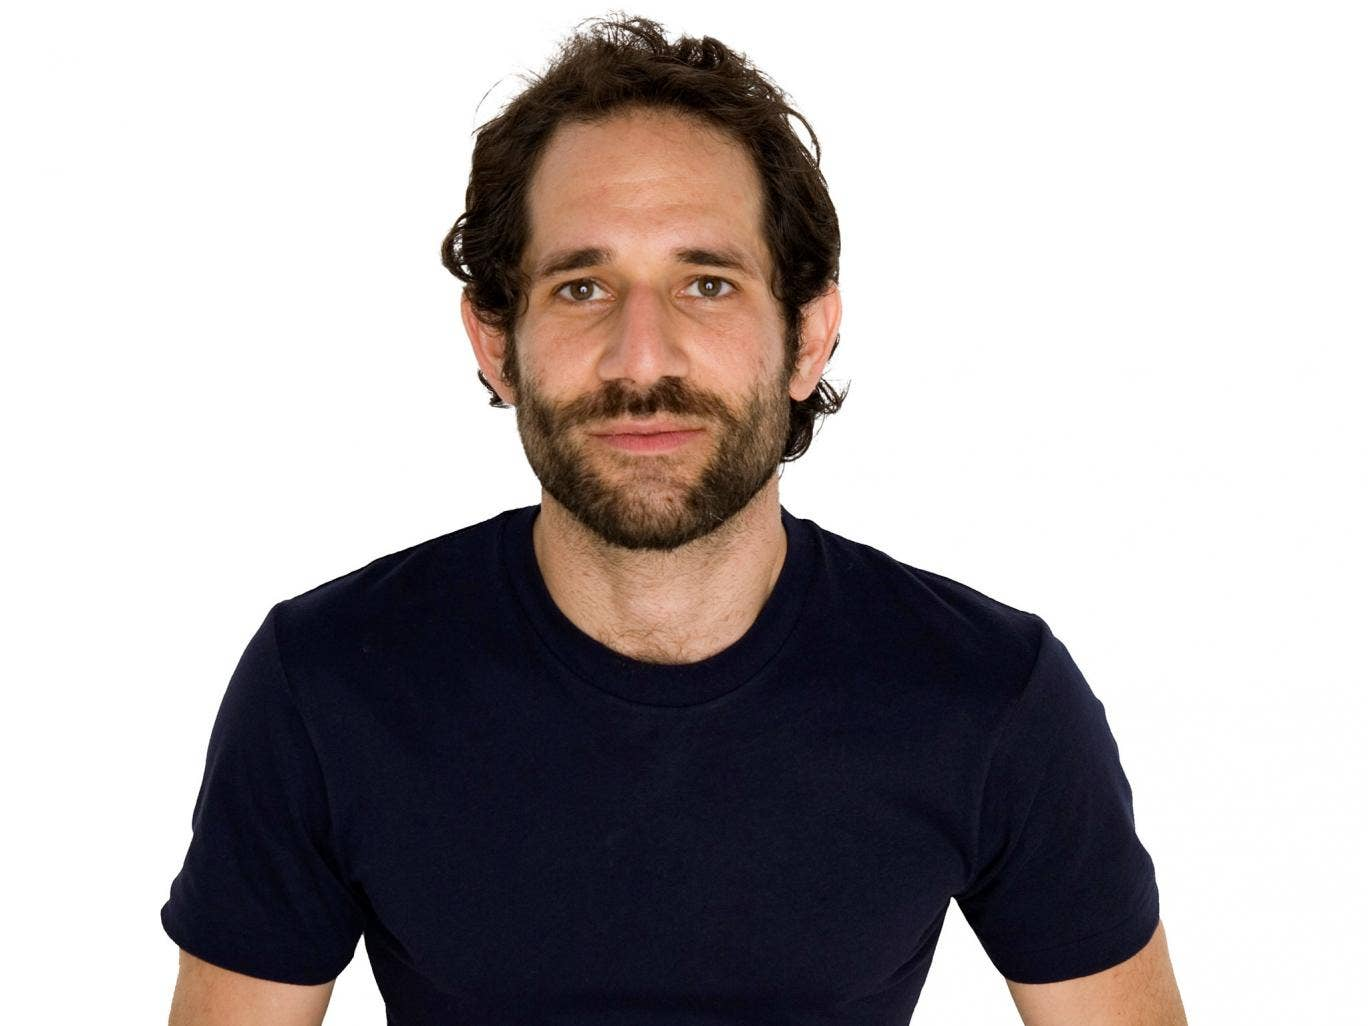 dov charney Dov charney, actor: a 20th century chocolate cake dov charney was born on january 31, 1969 in montreal, quebec, canada he is an actor, known for a 20th century chocolate cake (1983), life remote control (2011) and tavis smiley (2004).